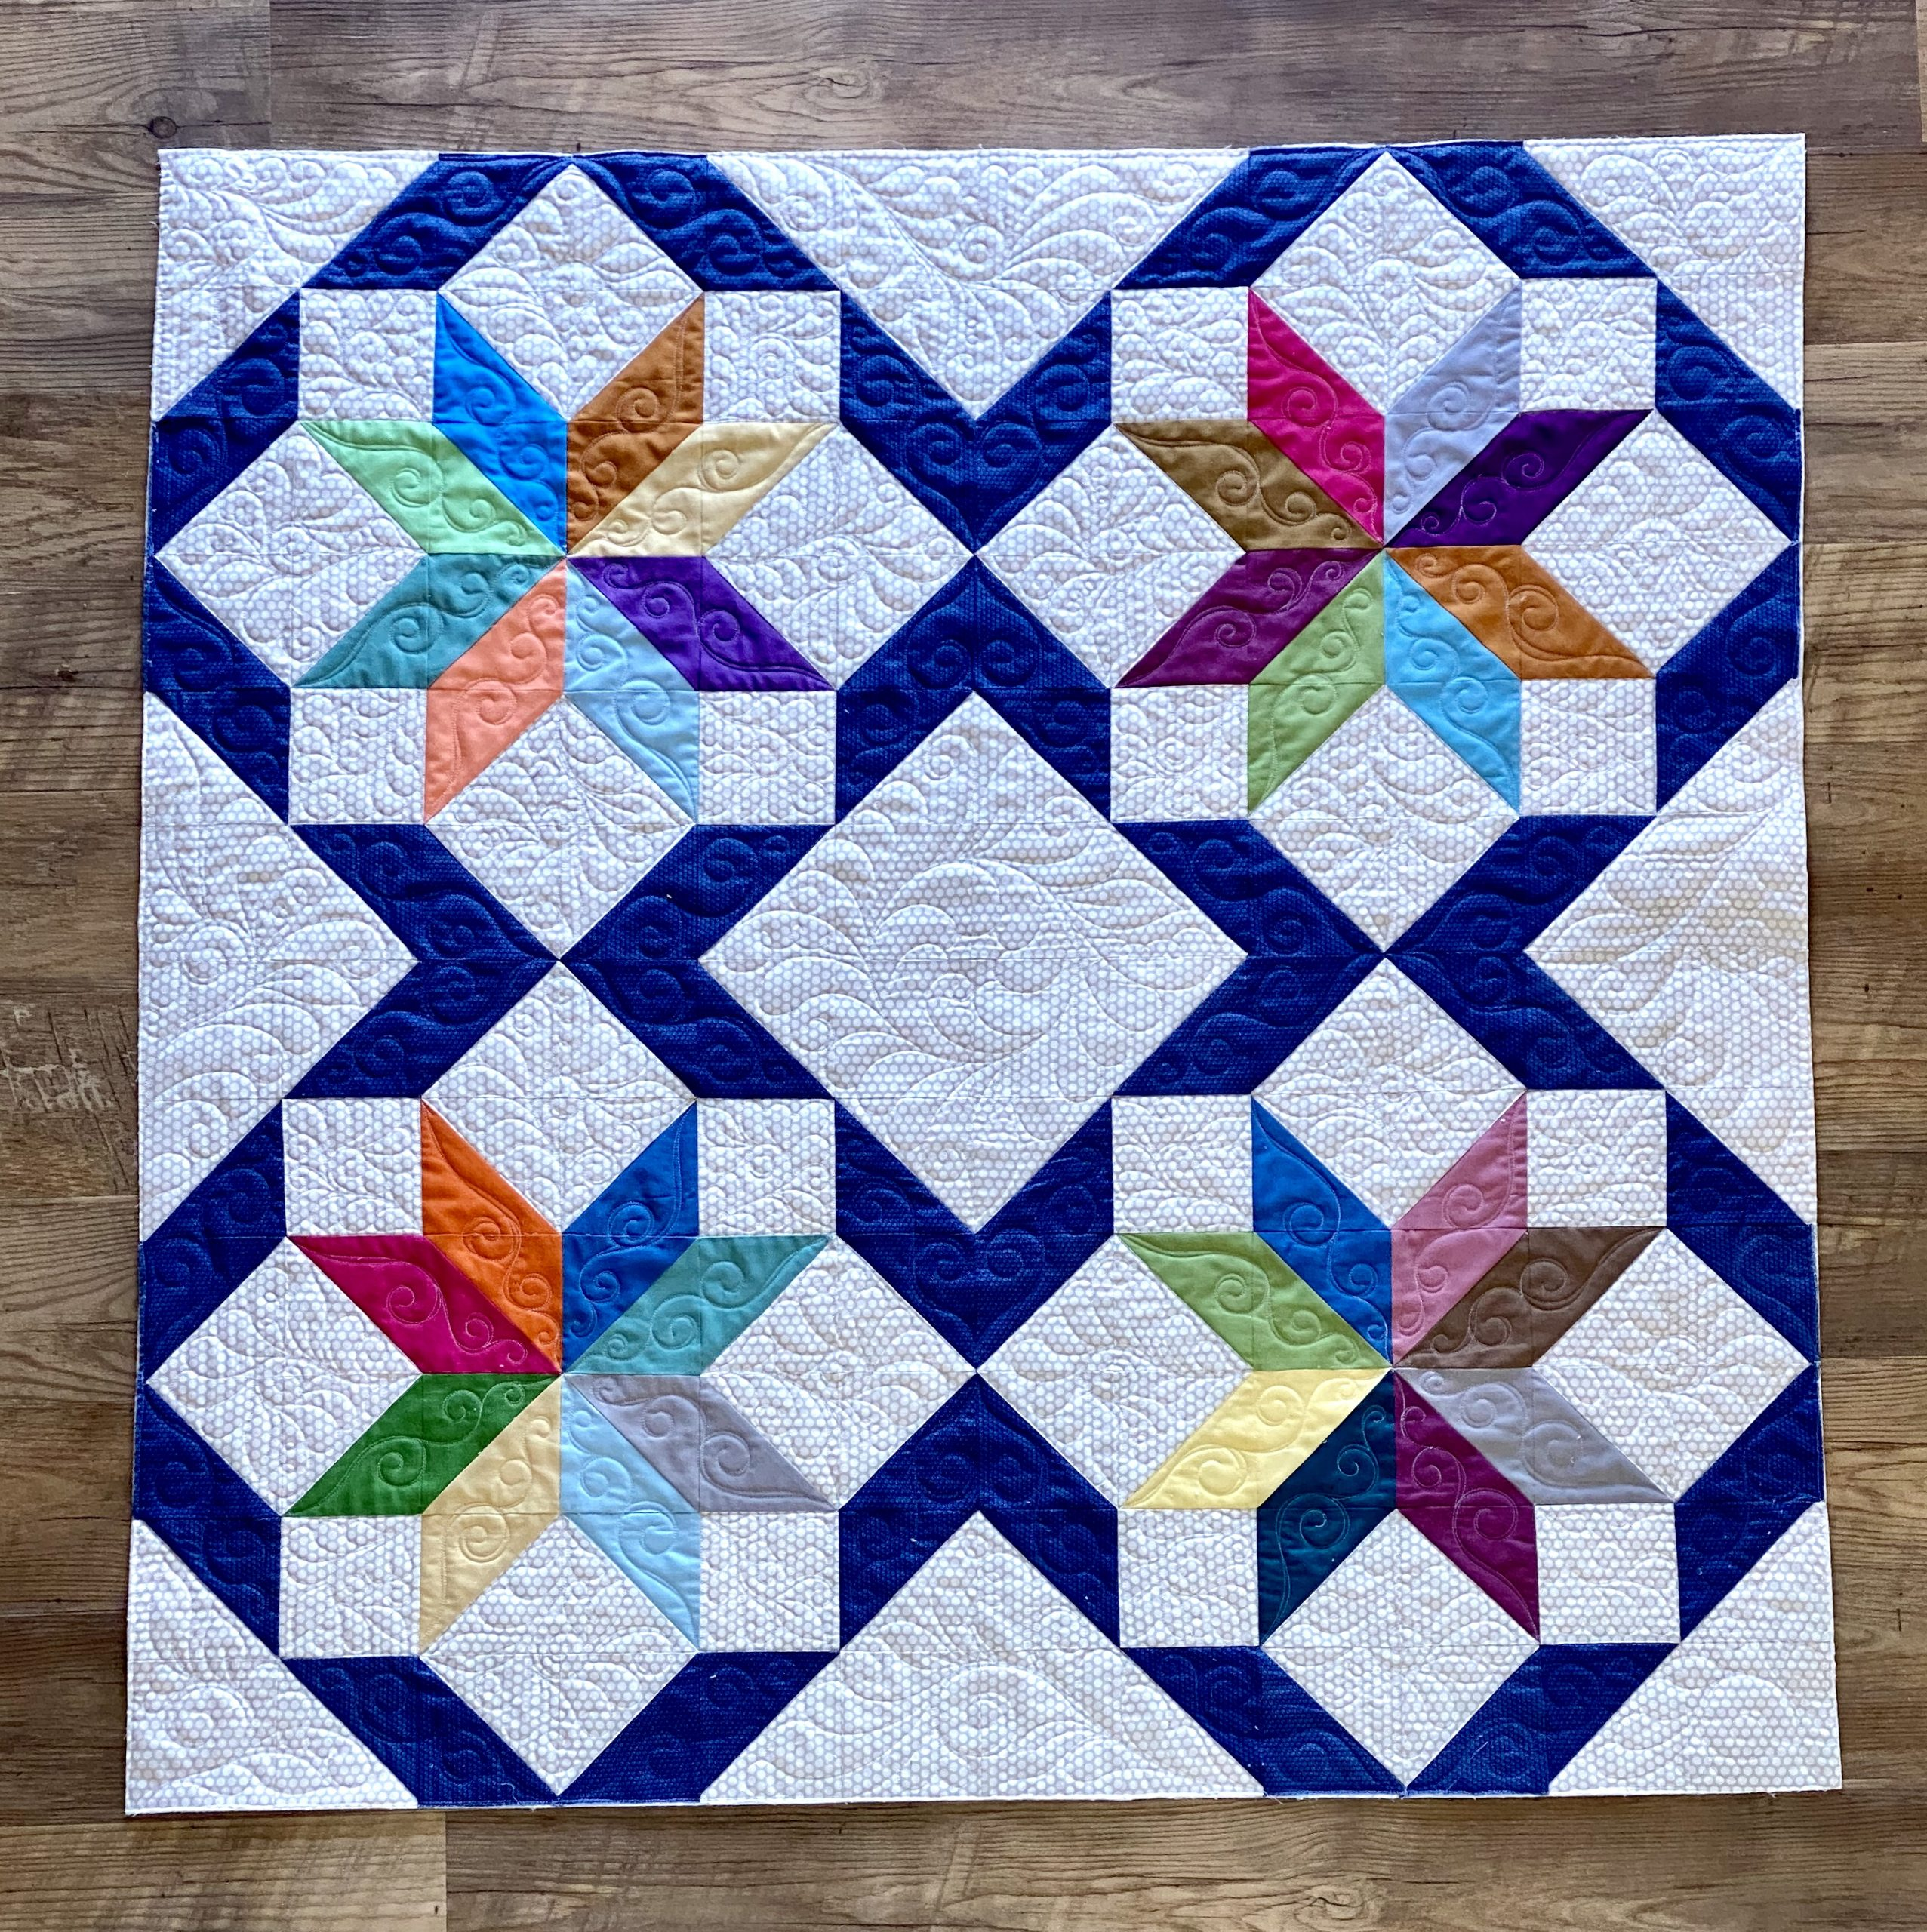 Includes Instructions for Three Project Sizes Market Square Joy of Sets #1 Cozy Quilt Designs Cutting Corners Series Pattern